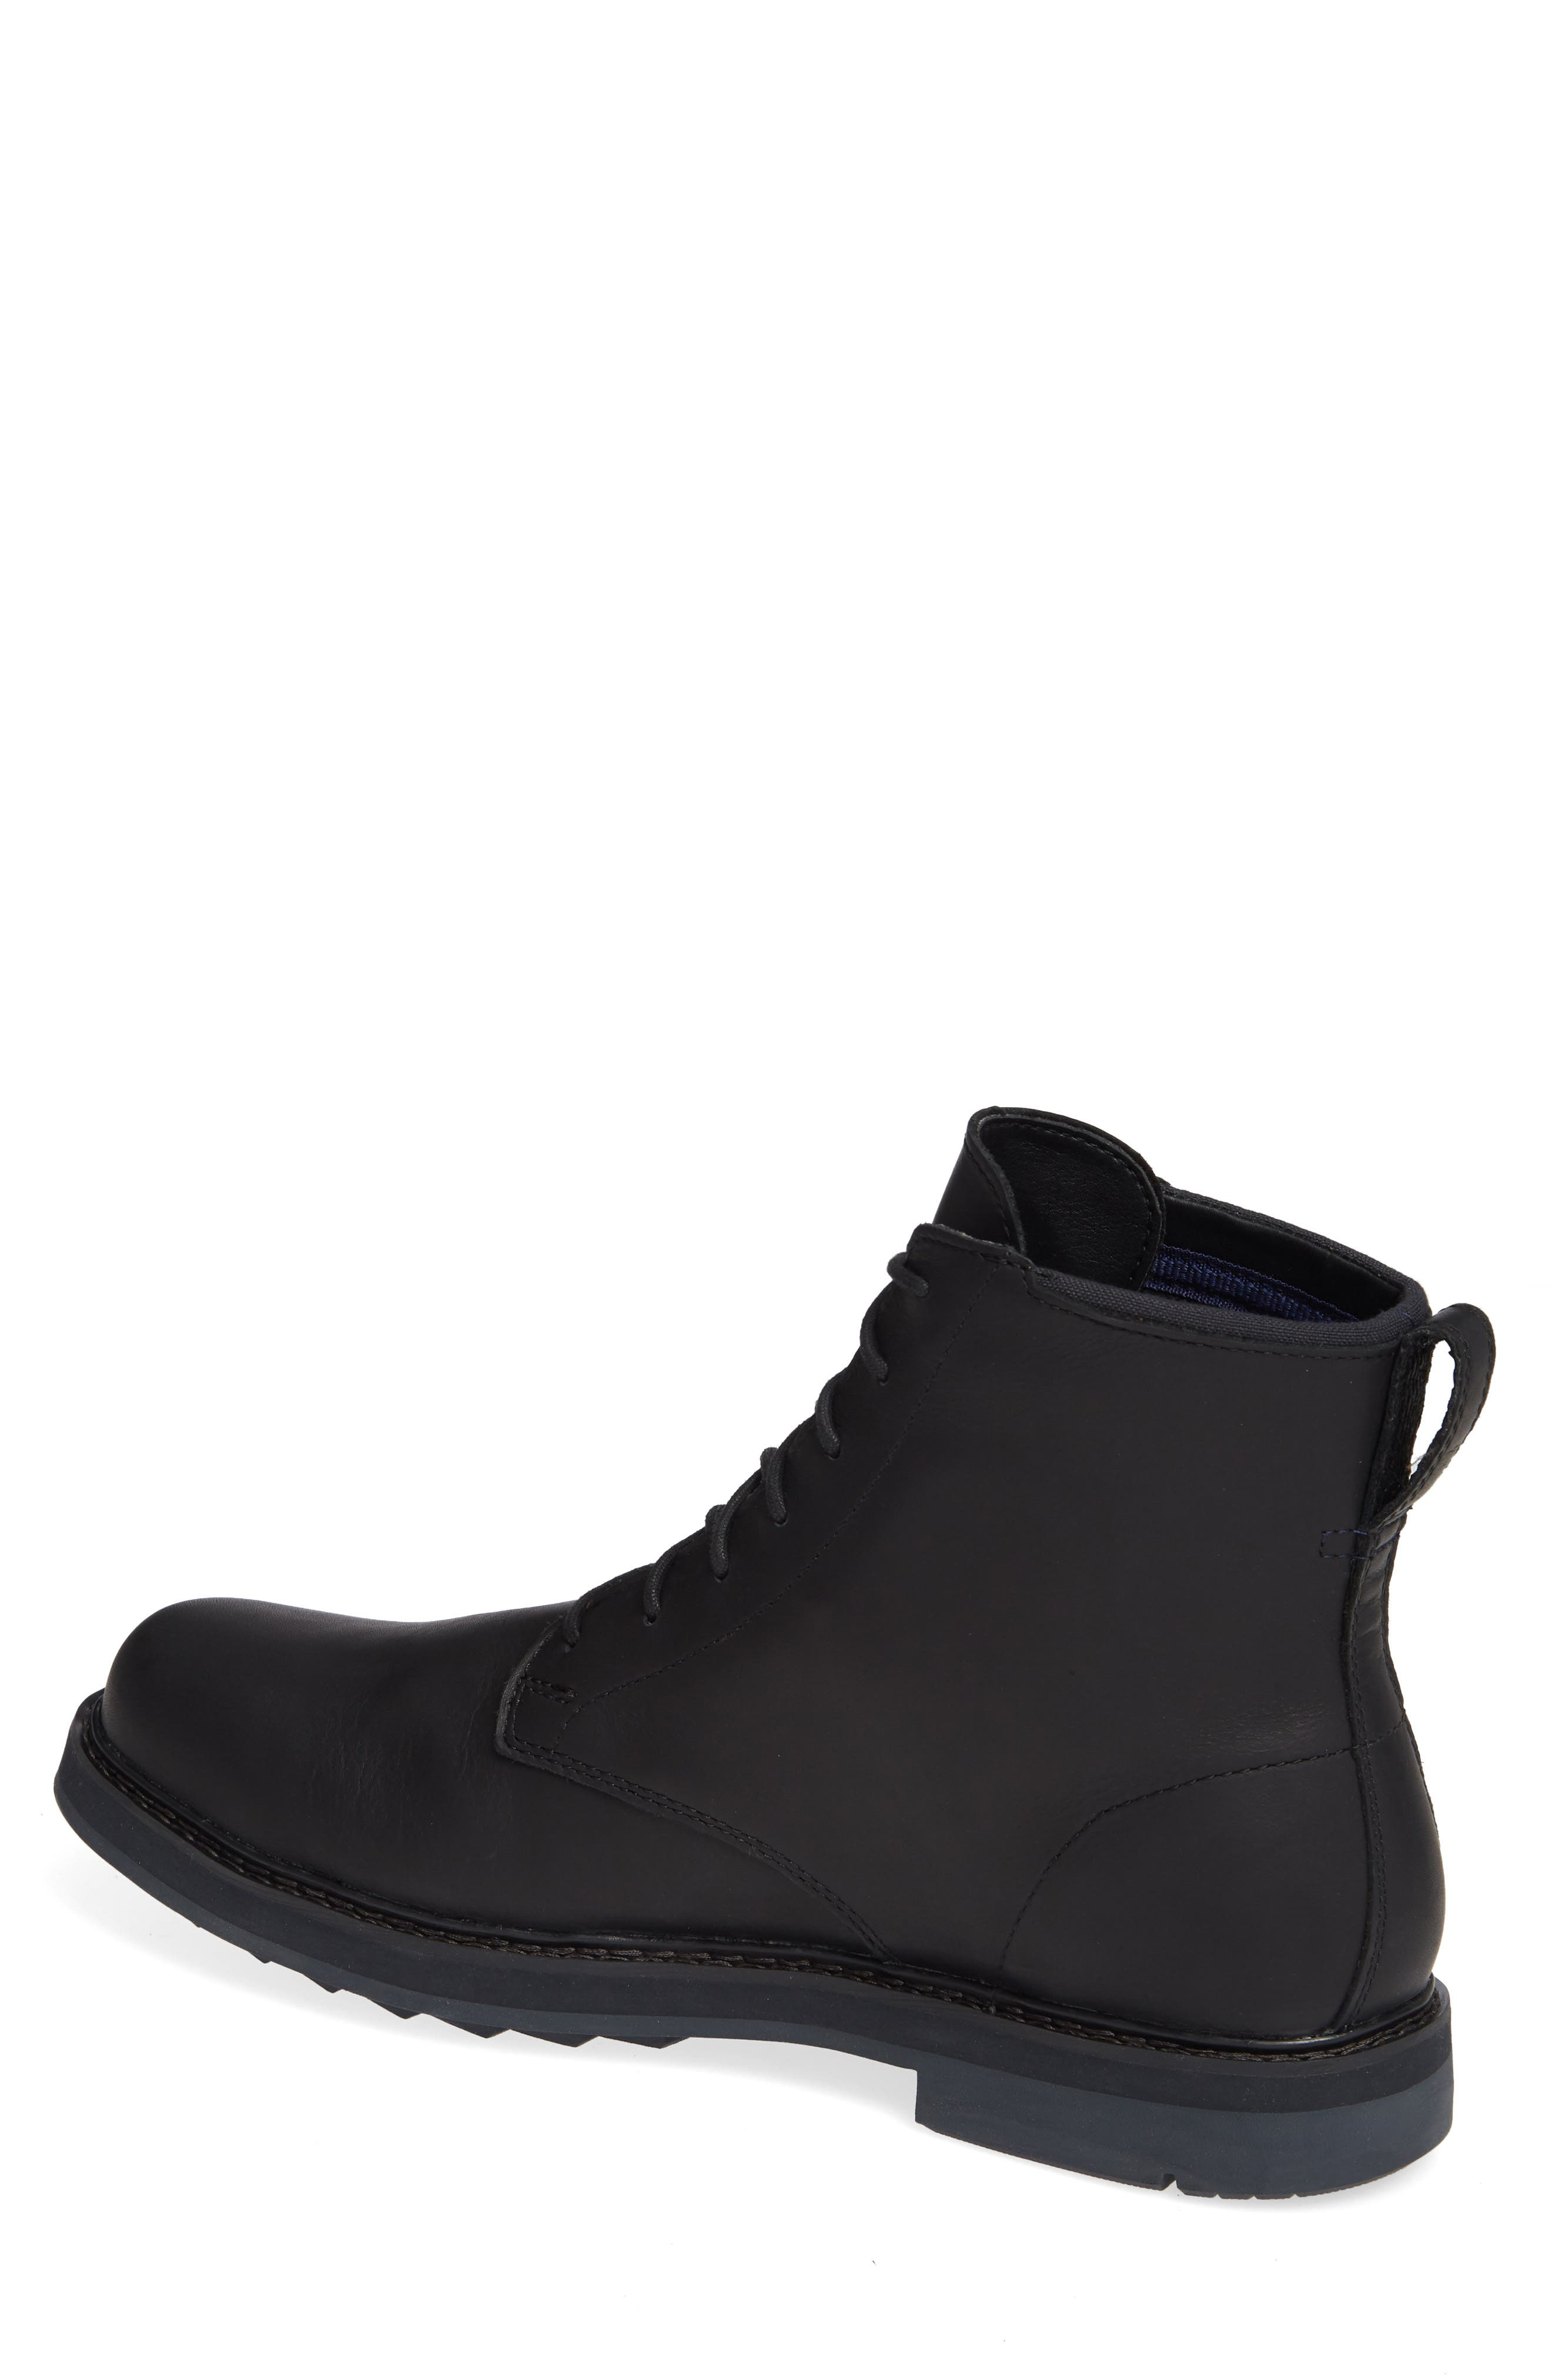 Squall Canyon Waterproof Plain Toe Boot,                             Alternate thumbnail 2, color,                             BLACK LEATHER